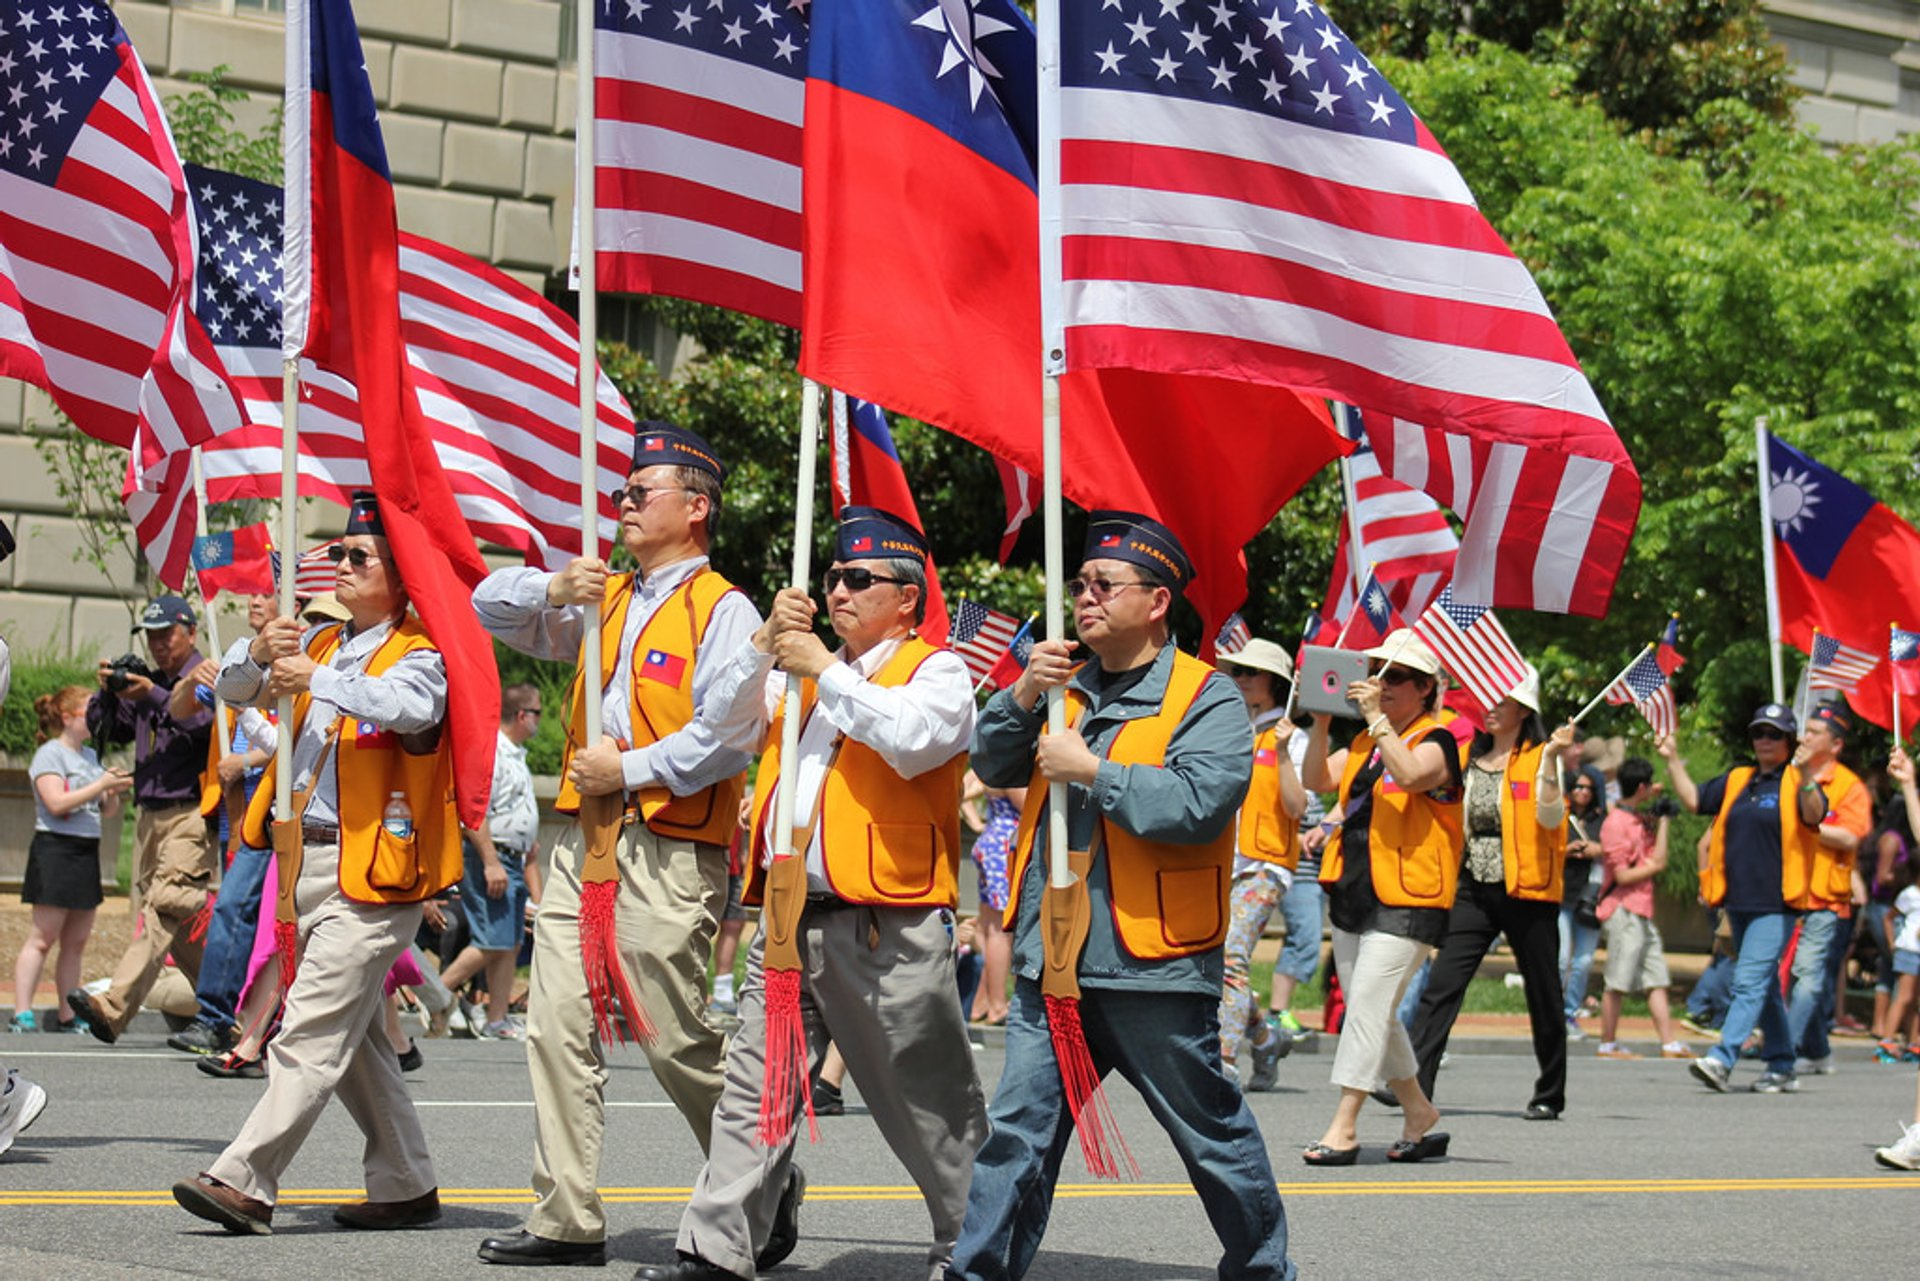 Best time for National Memorial Day Parade in Washington, D.C. 2019